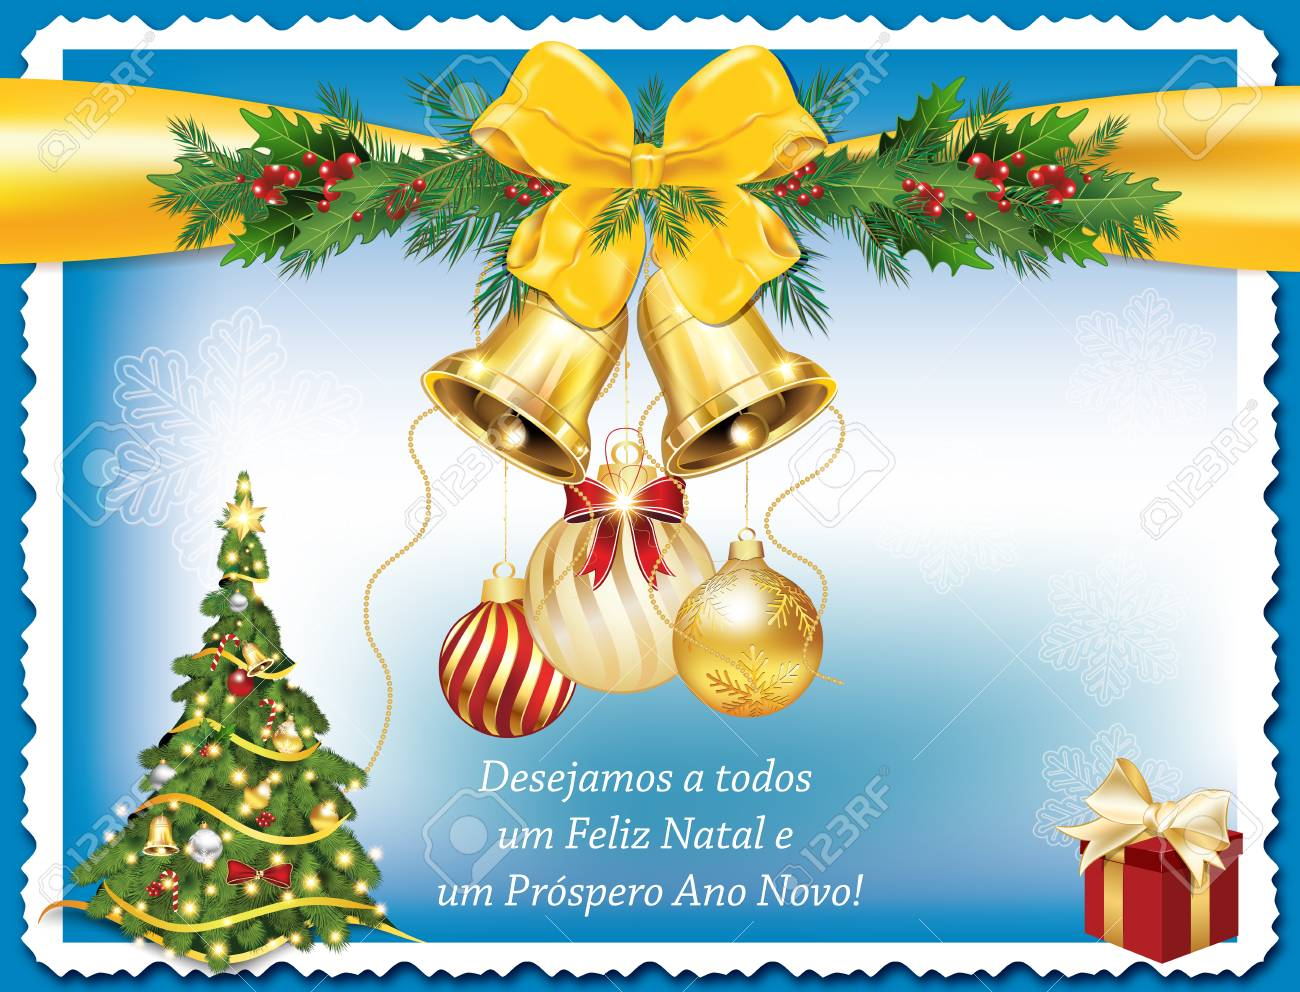 Portuguese seasons greeting card we wish you merry christmas portuguese seasons greeting card we wish you merry christmas and happy new year kristyandbryce Image collections